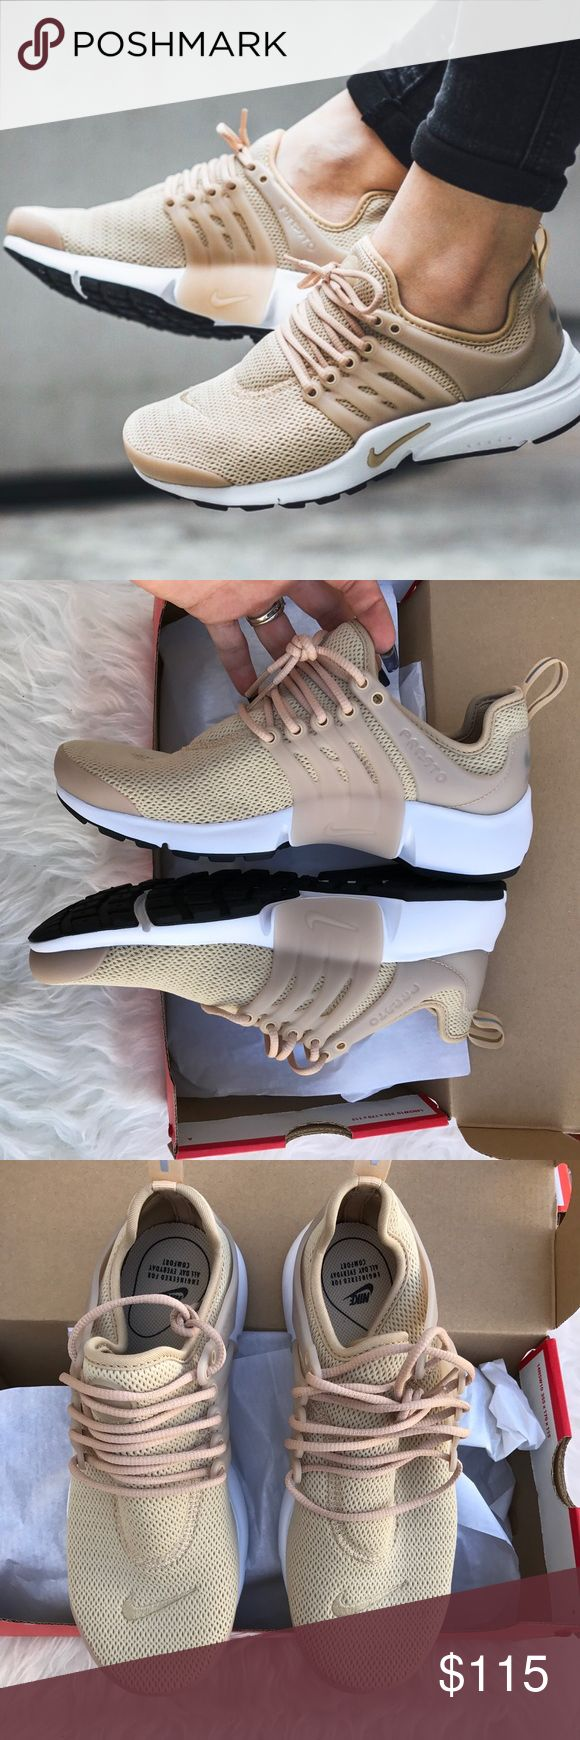 25 Best Ideas About Air Presto On Pinterest Air Presto